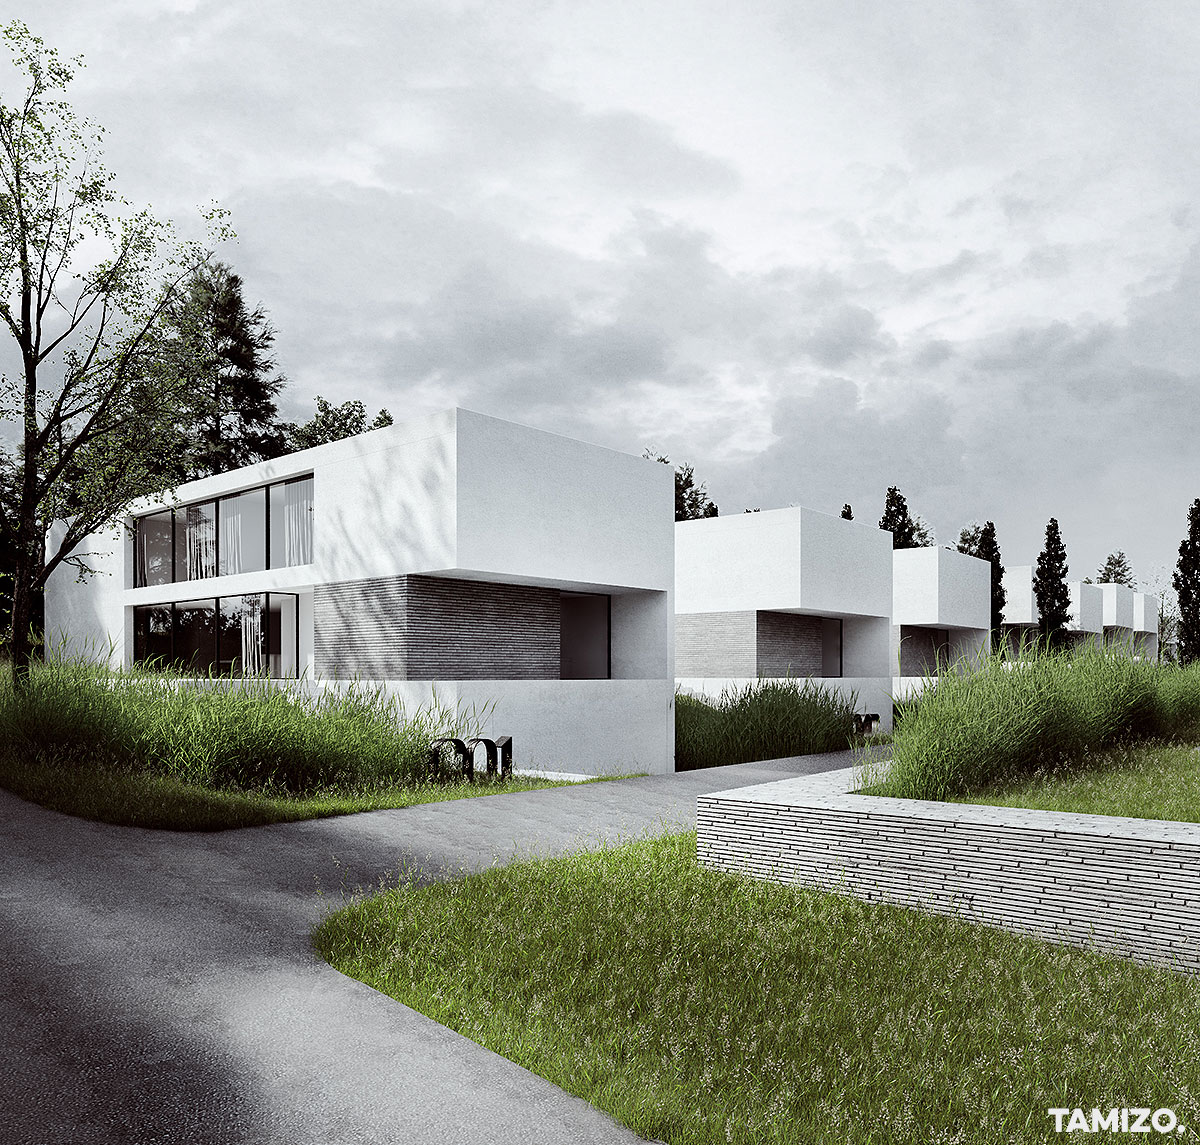 A061_tamizo_architects_competition_tbilisi_georgia_multifamily_houseing_realestate_13